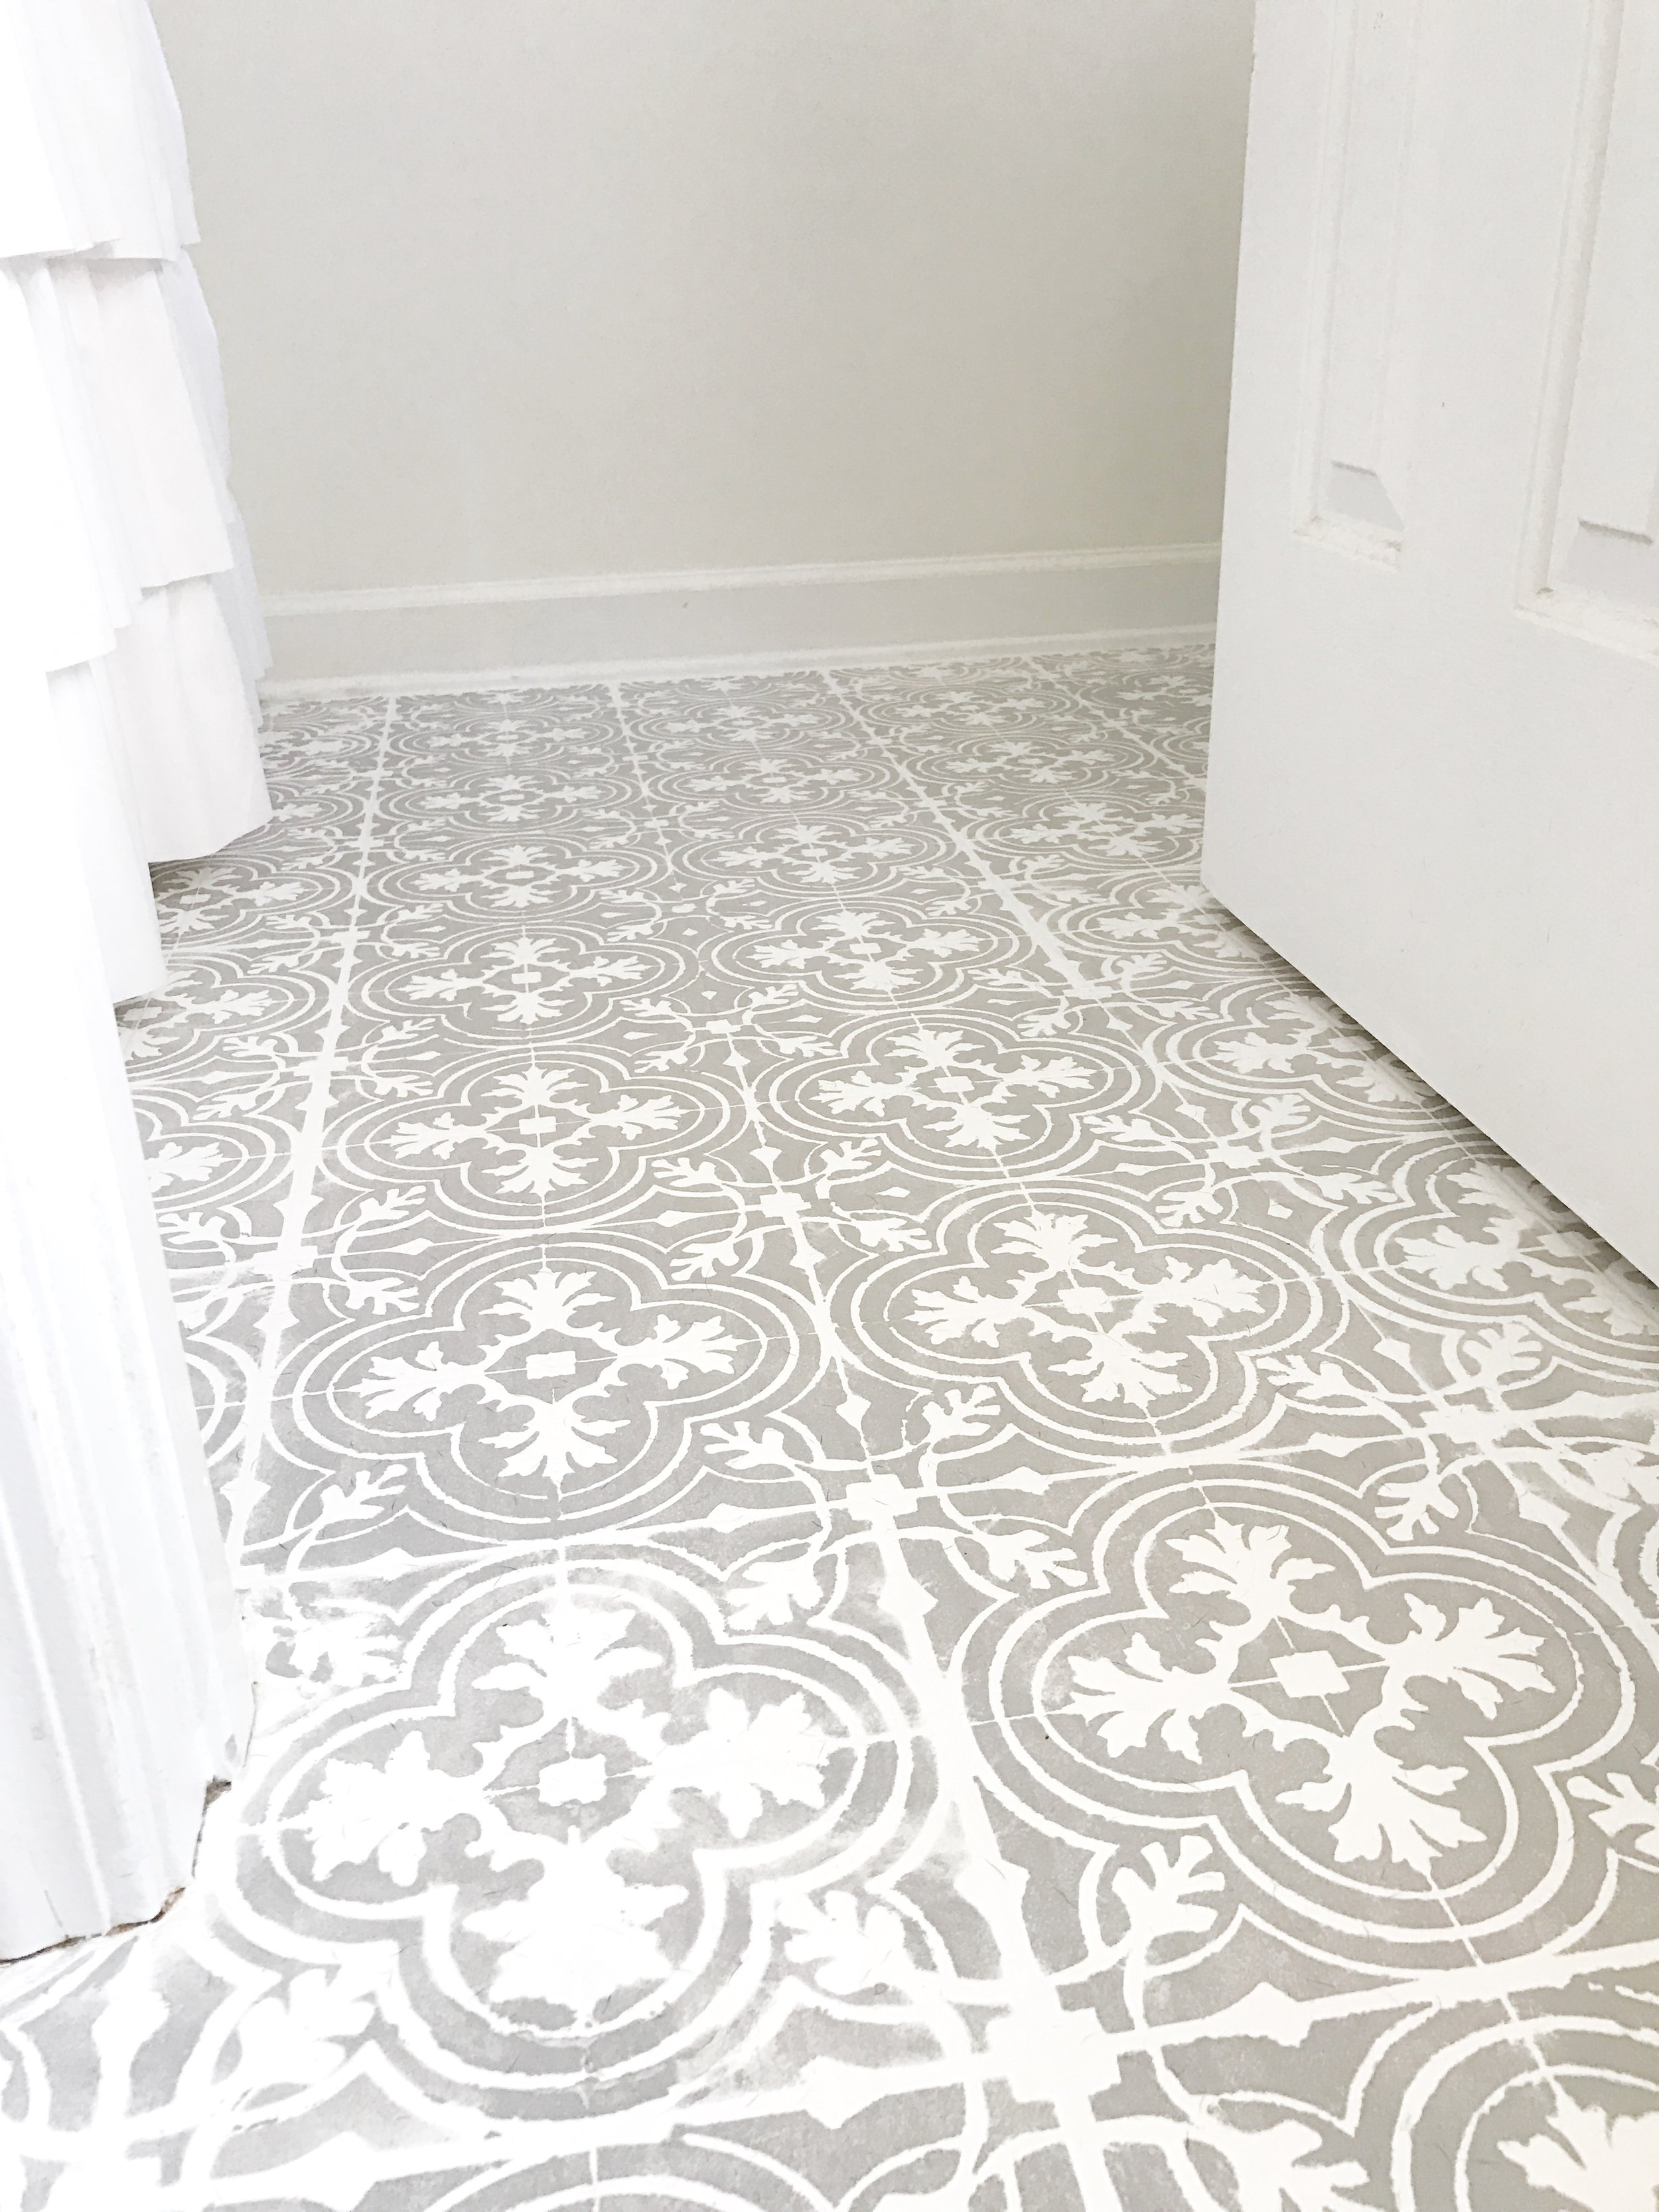 DIY Tutorial-- How to Paint Your Linoleum or Tile Floors to Look Like Patterned Cement Tiles By Plum Pretty Decor and Design